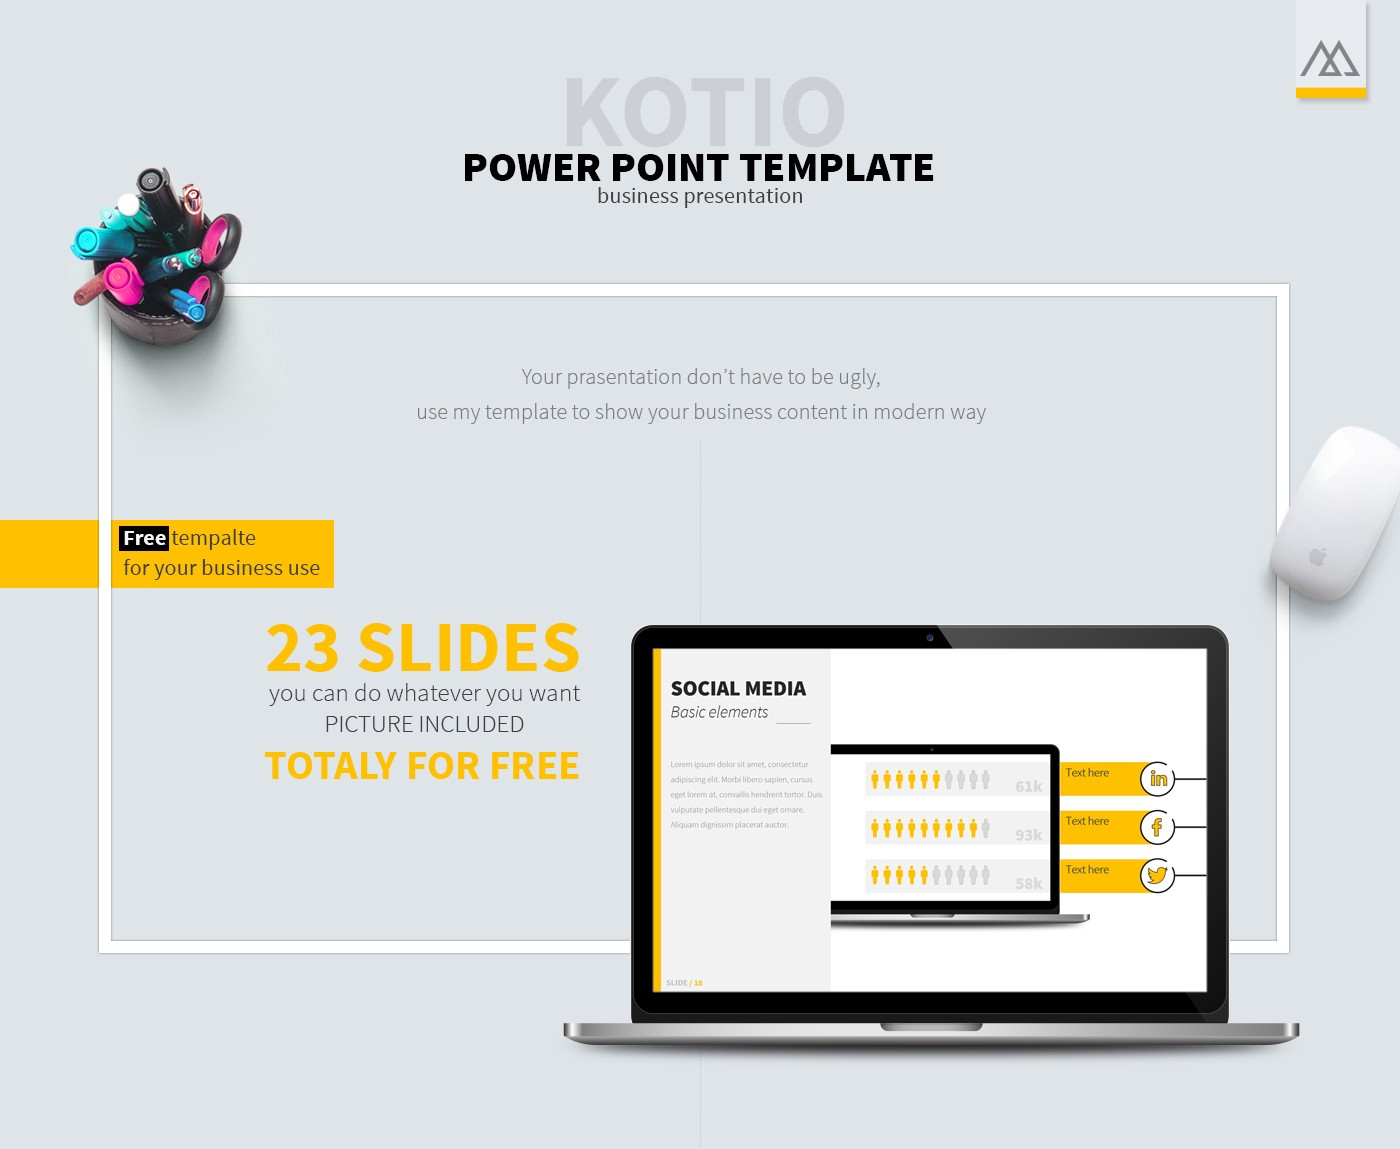 40 free cool powerpoint templates for presentations you can customize every slide to fit your presentation and its ready to use photos are easy to access therefore no time wasted download friedricerecipe Choice Image